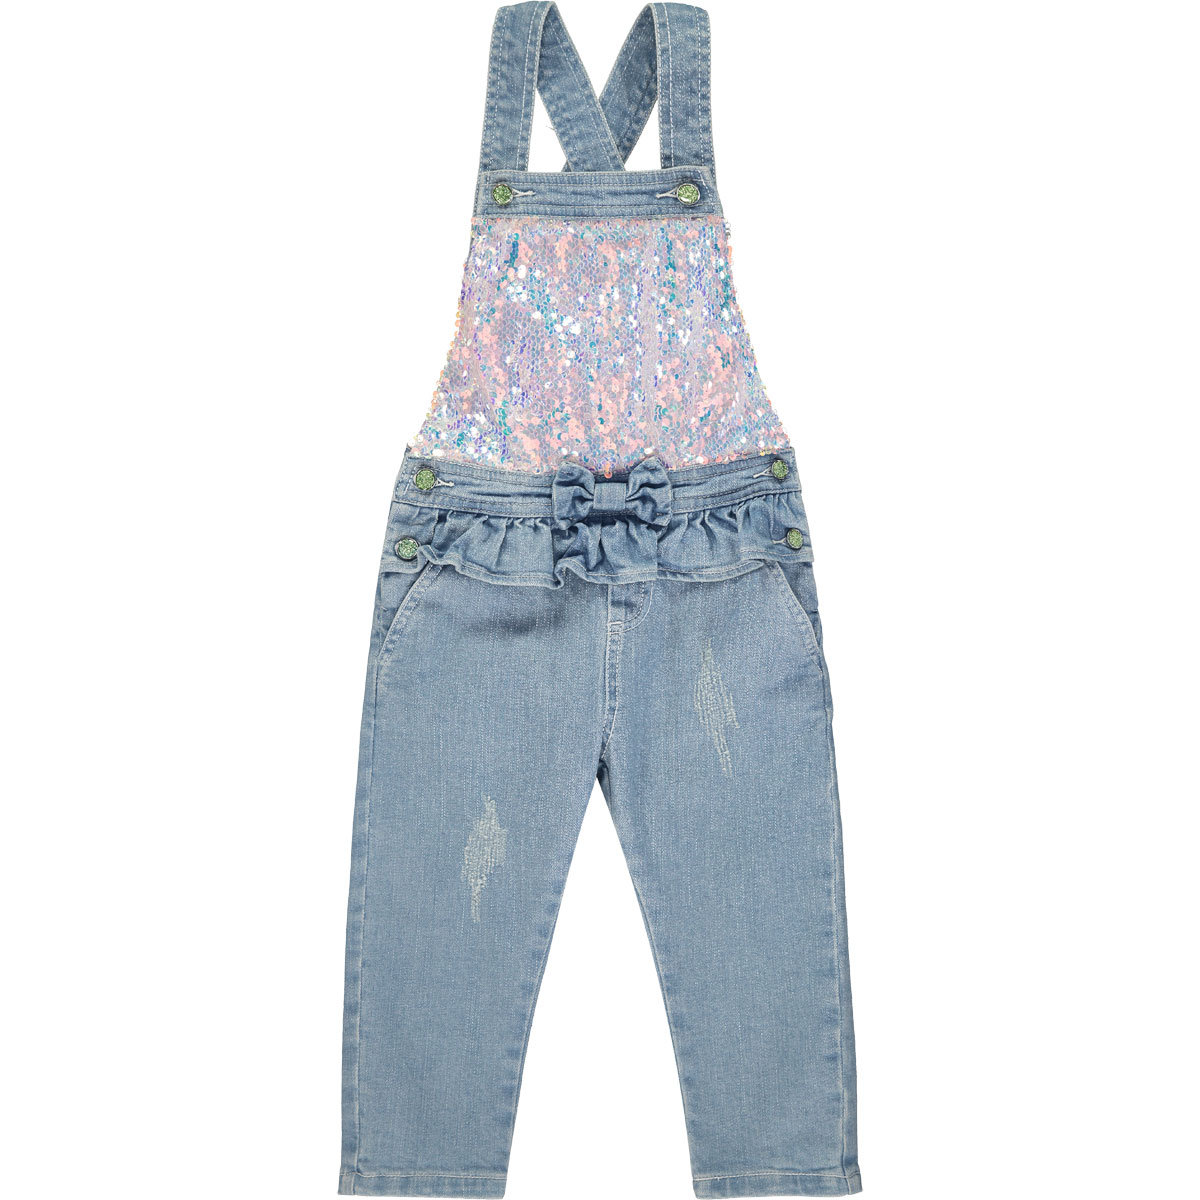 A'Dee Candice Dungaree Set